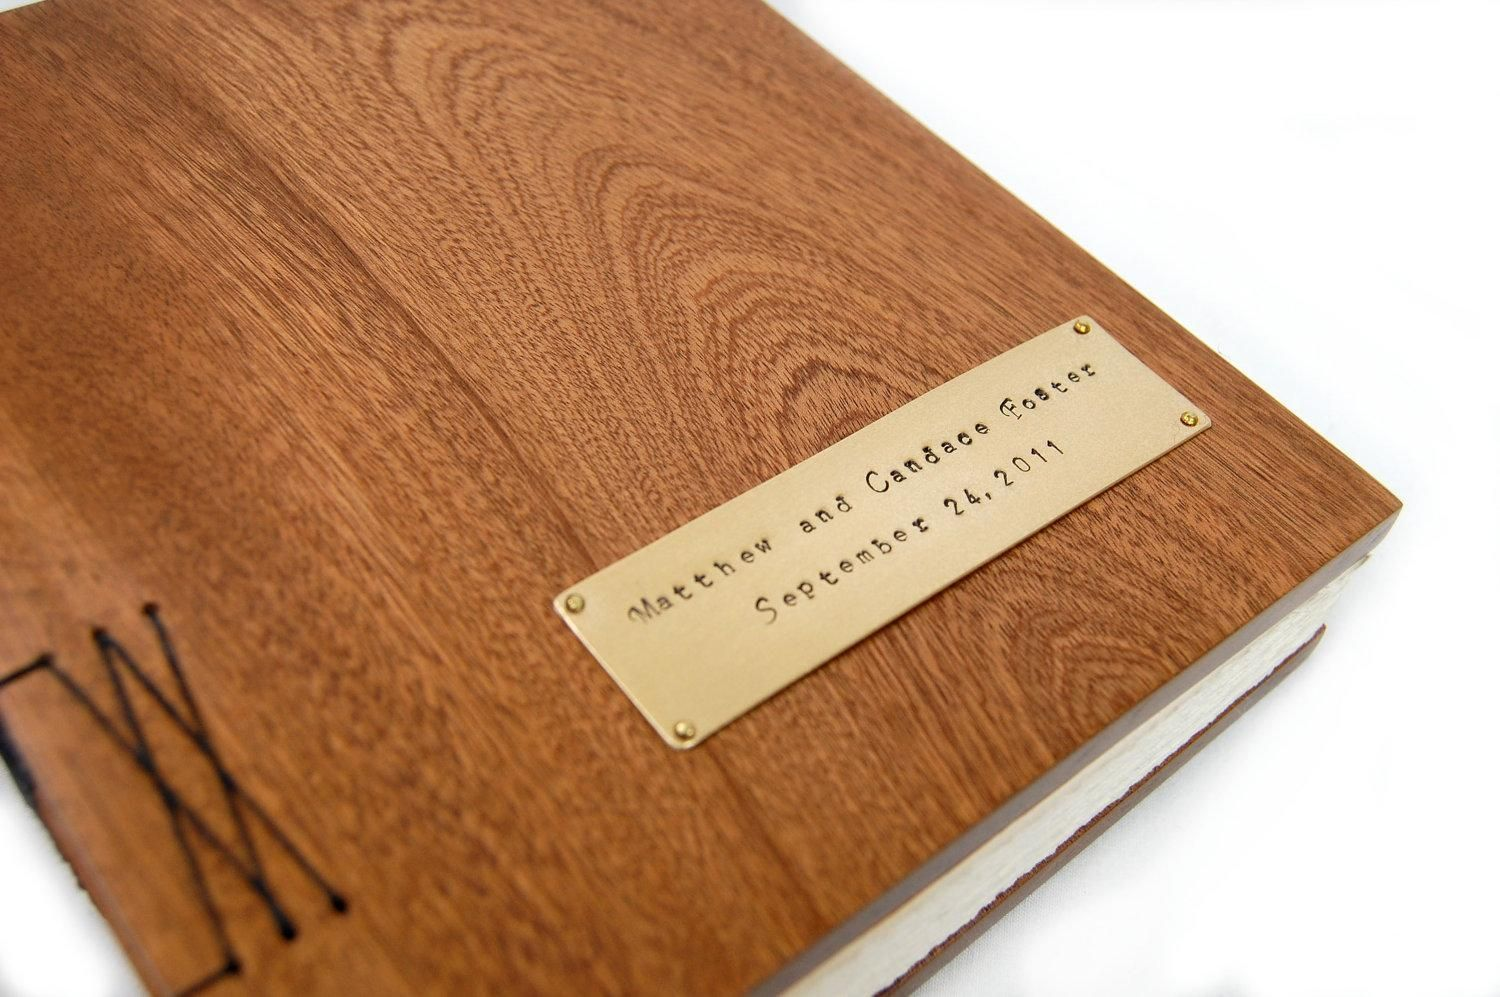 Wood Cover Cookbook : Handmade mahogany guest book with wood covers custom